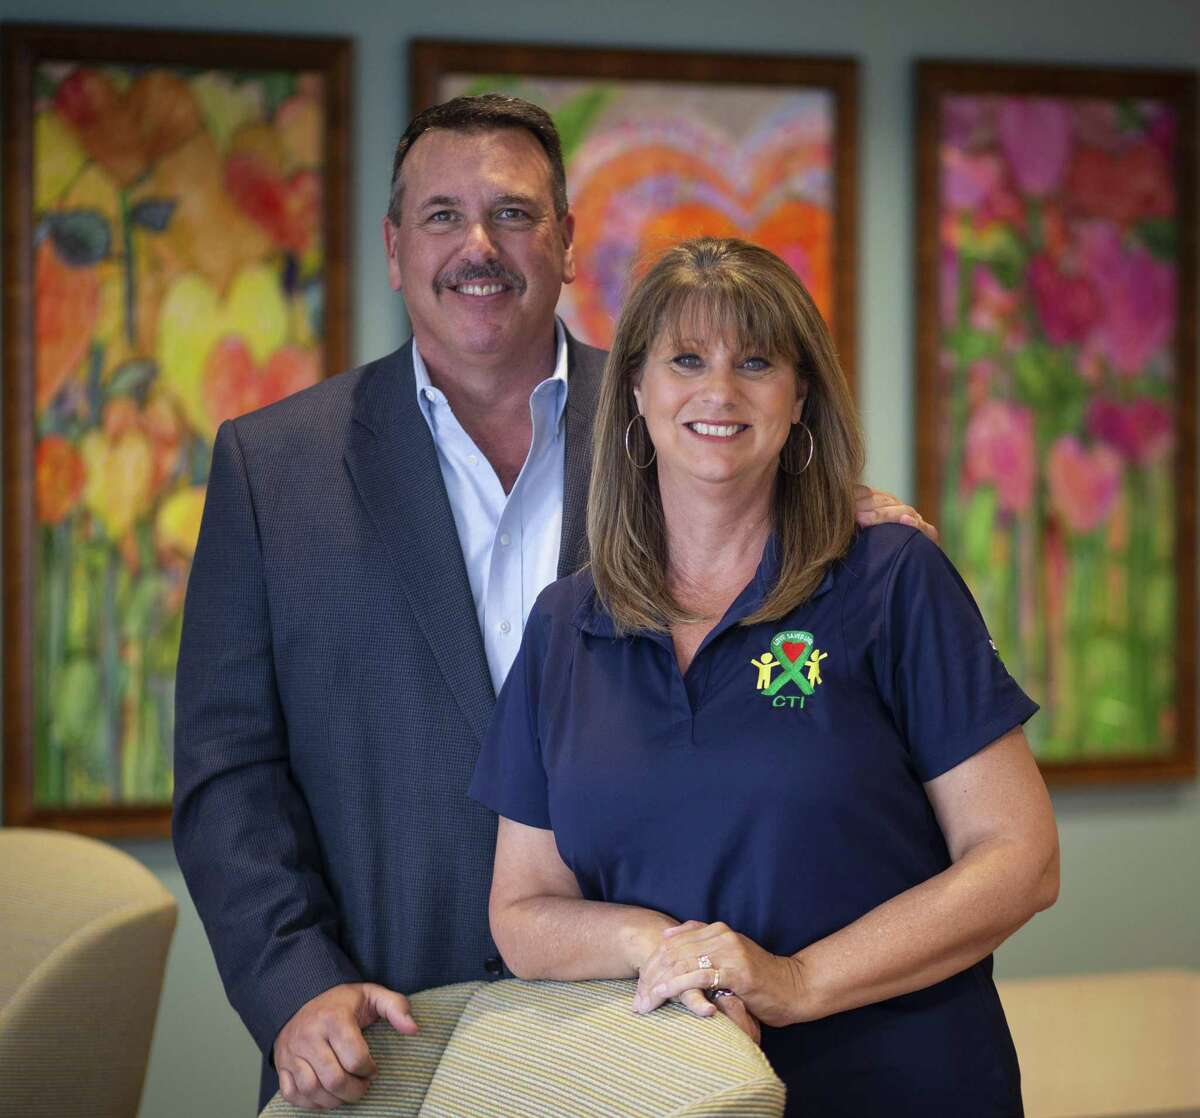 Ross and Cheryl Witty started the nonprofit Children's Transplant Initiative to give back to the organ transplant community after their daughter Kimmy underwent a kidney transplant in 2011.